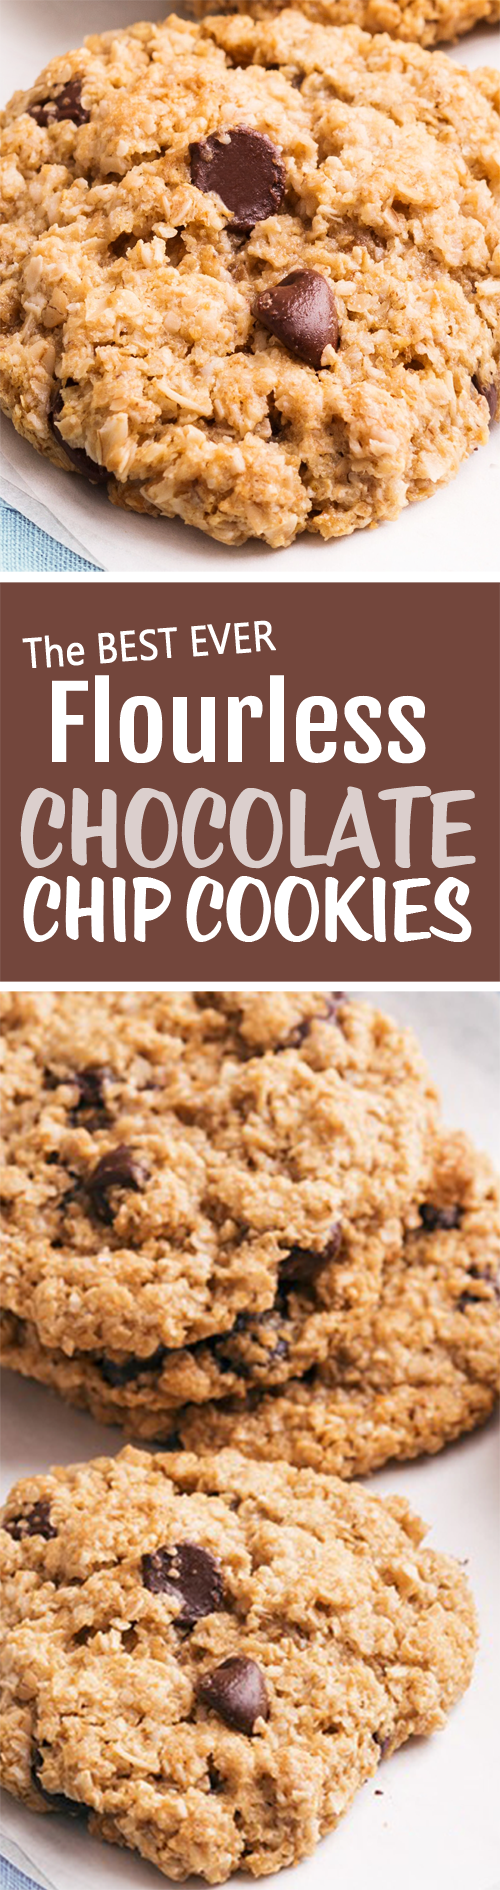 Flourless Chocolate Chip Cookies, with NO crazy ingredients, and they are vegan flourless chocolate chip cookies